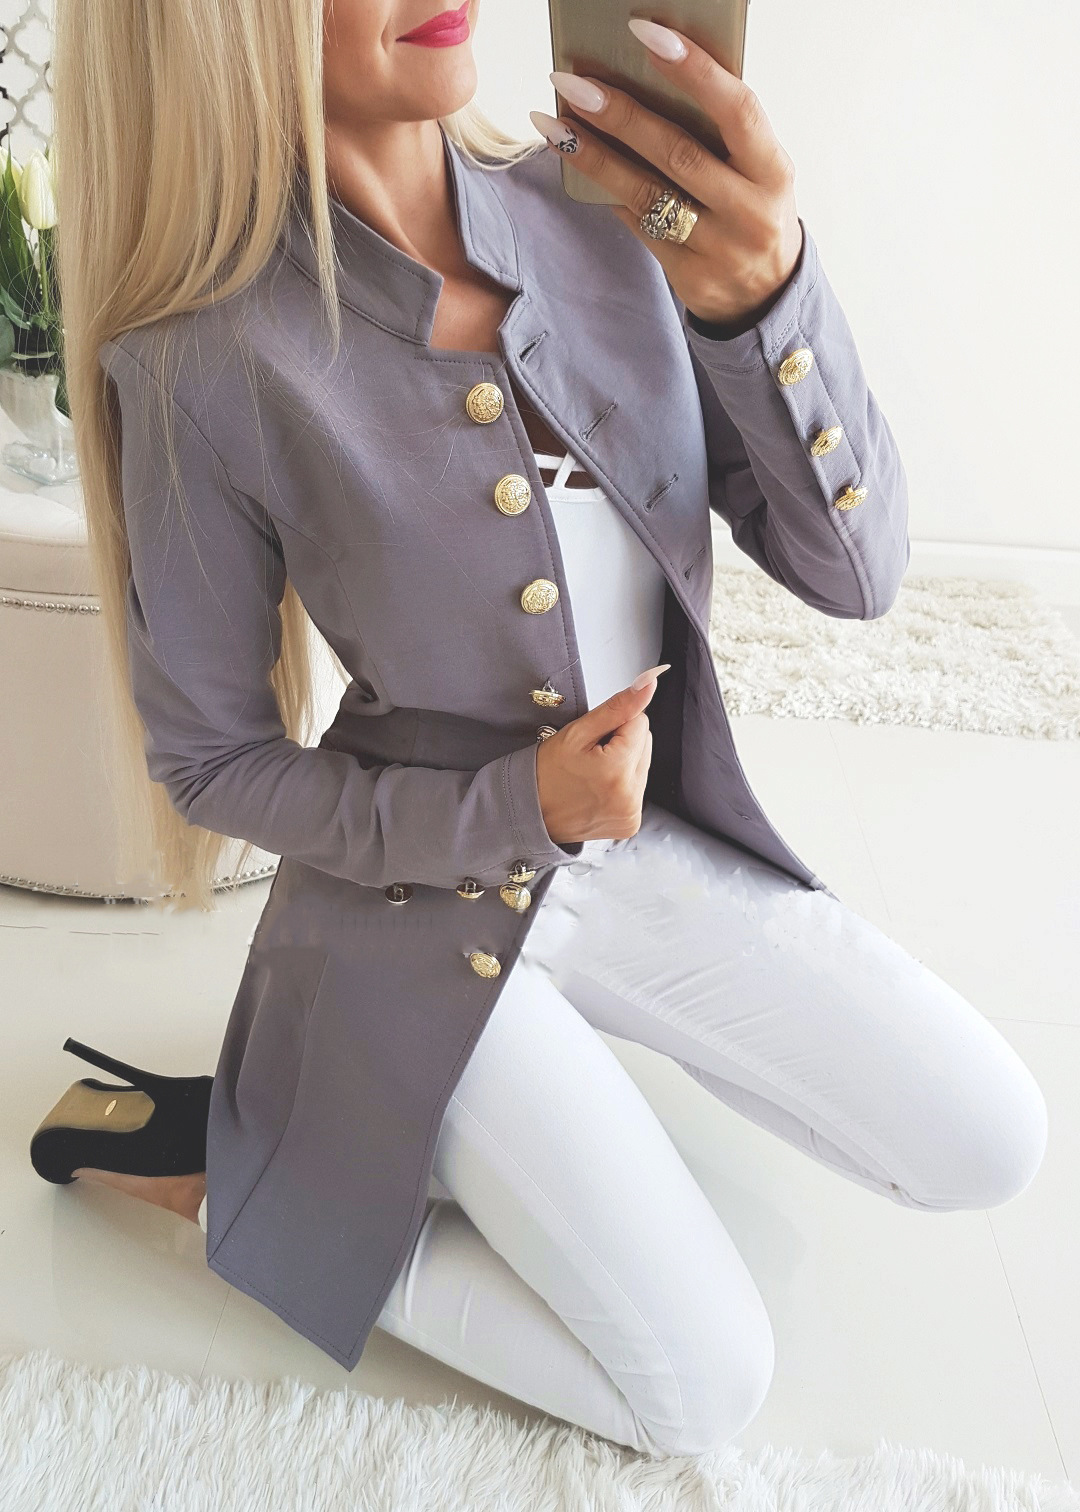 Women Slim Suit Coat Autumn Long Sleeve Single Breasted Button OL Casual Blazer Jacket Outwear gray